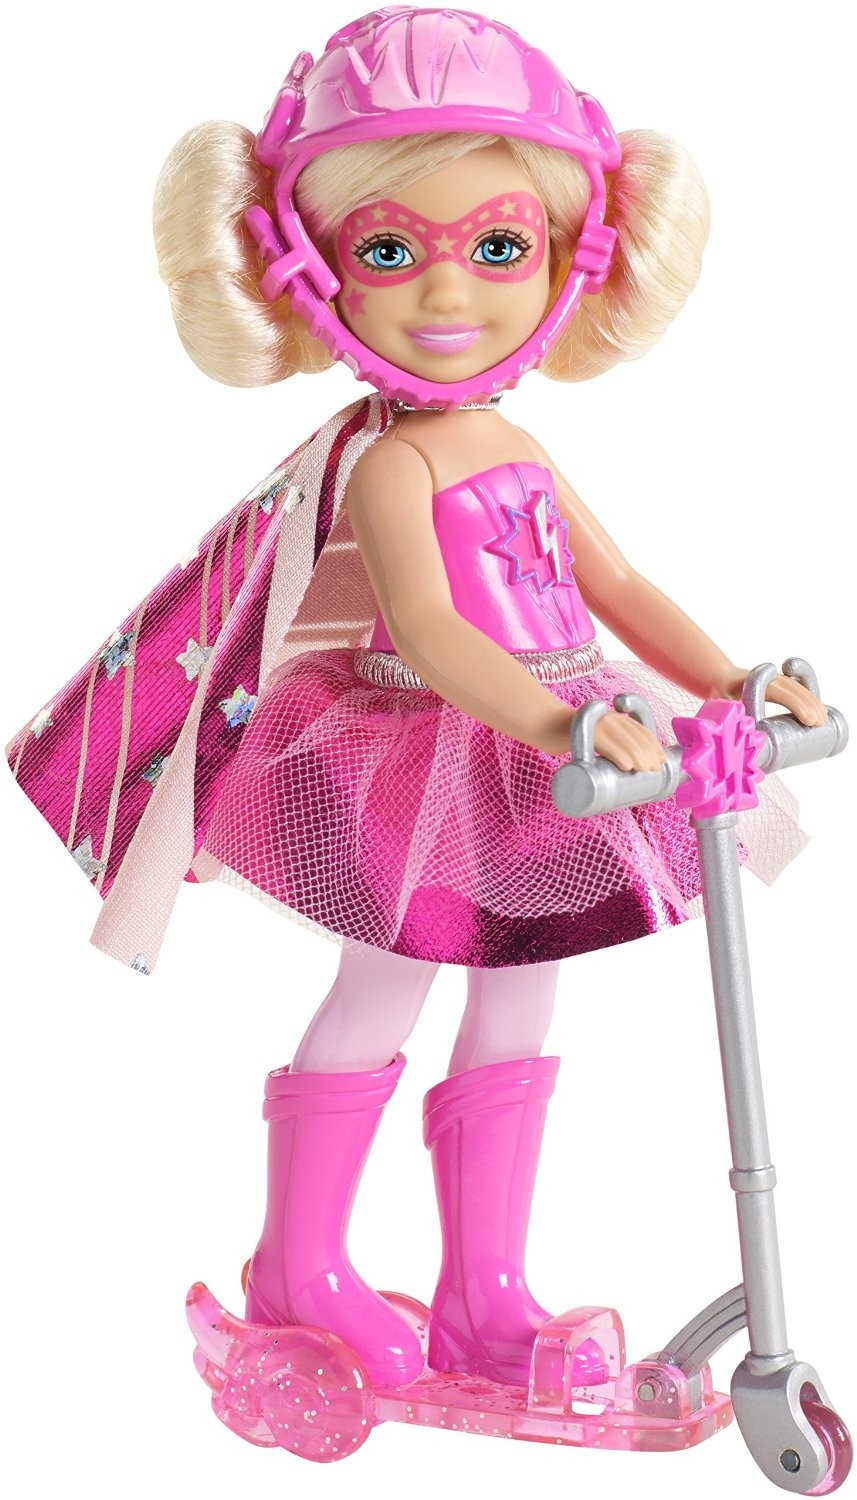 Original FOR Barbie in Princess Power Chelsea and Scooter Doll, Blue and Pink Children's gift Christmas